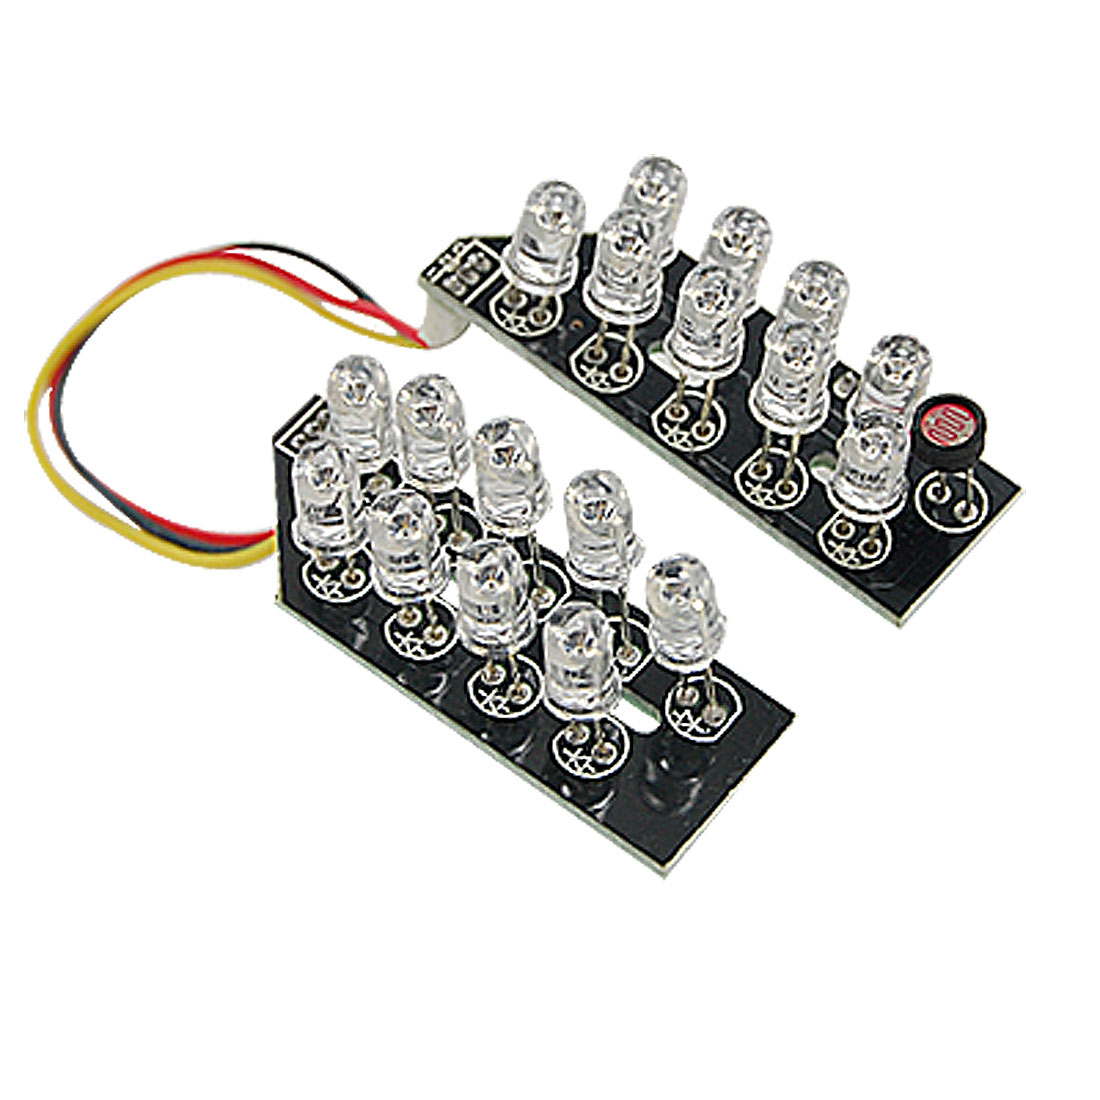 IR 60 Degree 18 LEDs Red Infrared Lamp Board for Day Night Camera